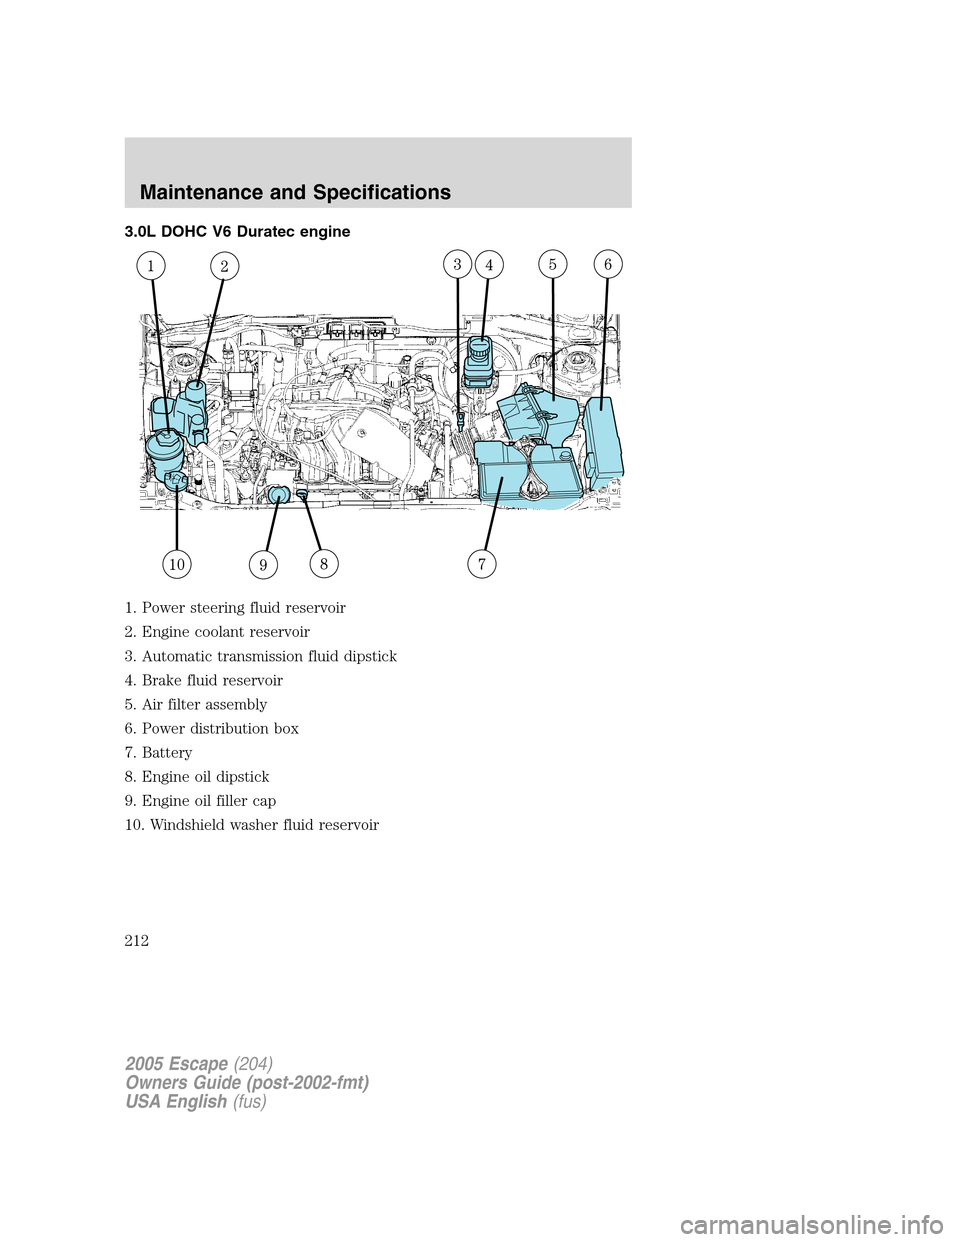 Washer Fluid Ford Escape 2005 1g Owners Manual 2002 V6 Engine Diagram Page 212 30l Dohc Duratec